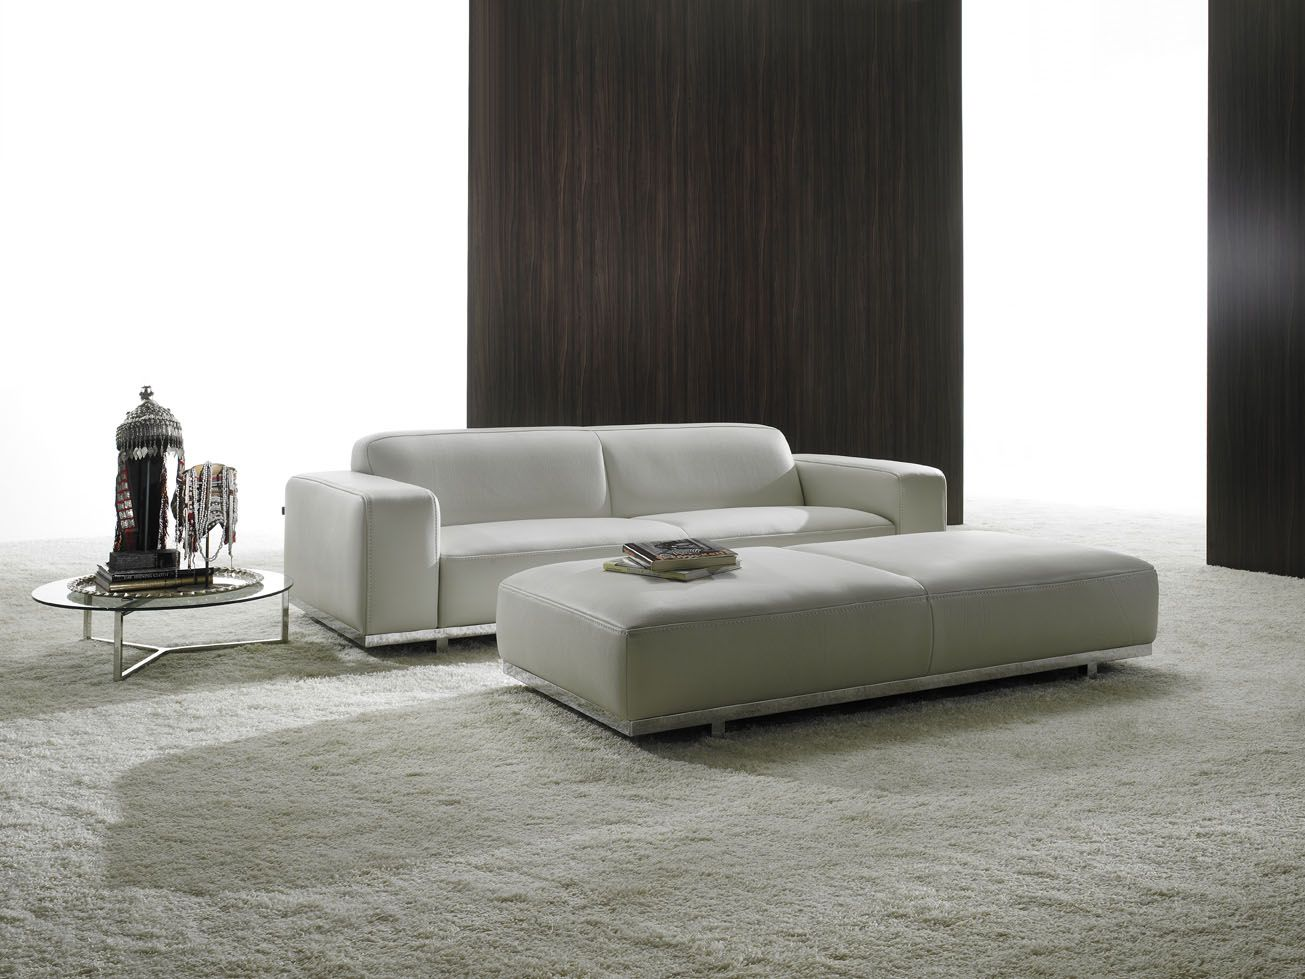 Modern Round Sofa Bed Cherry Table With 3 Drawers White For Minimalis